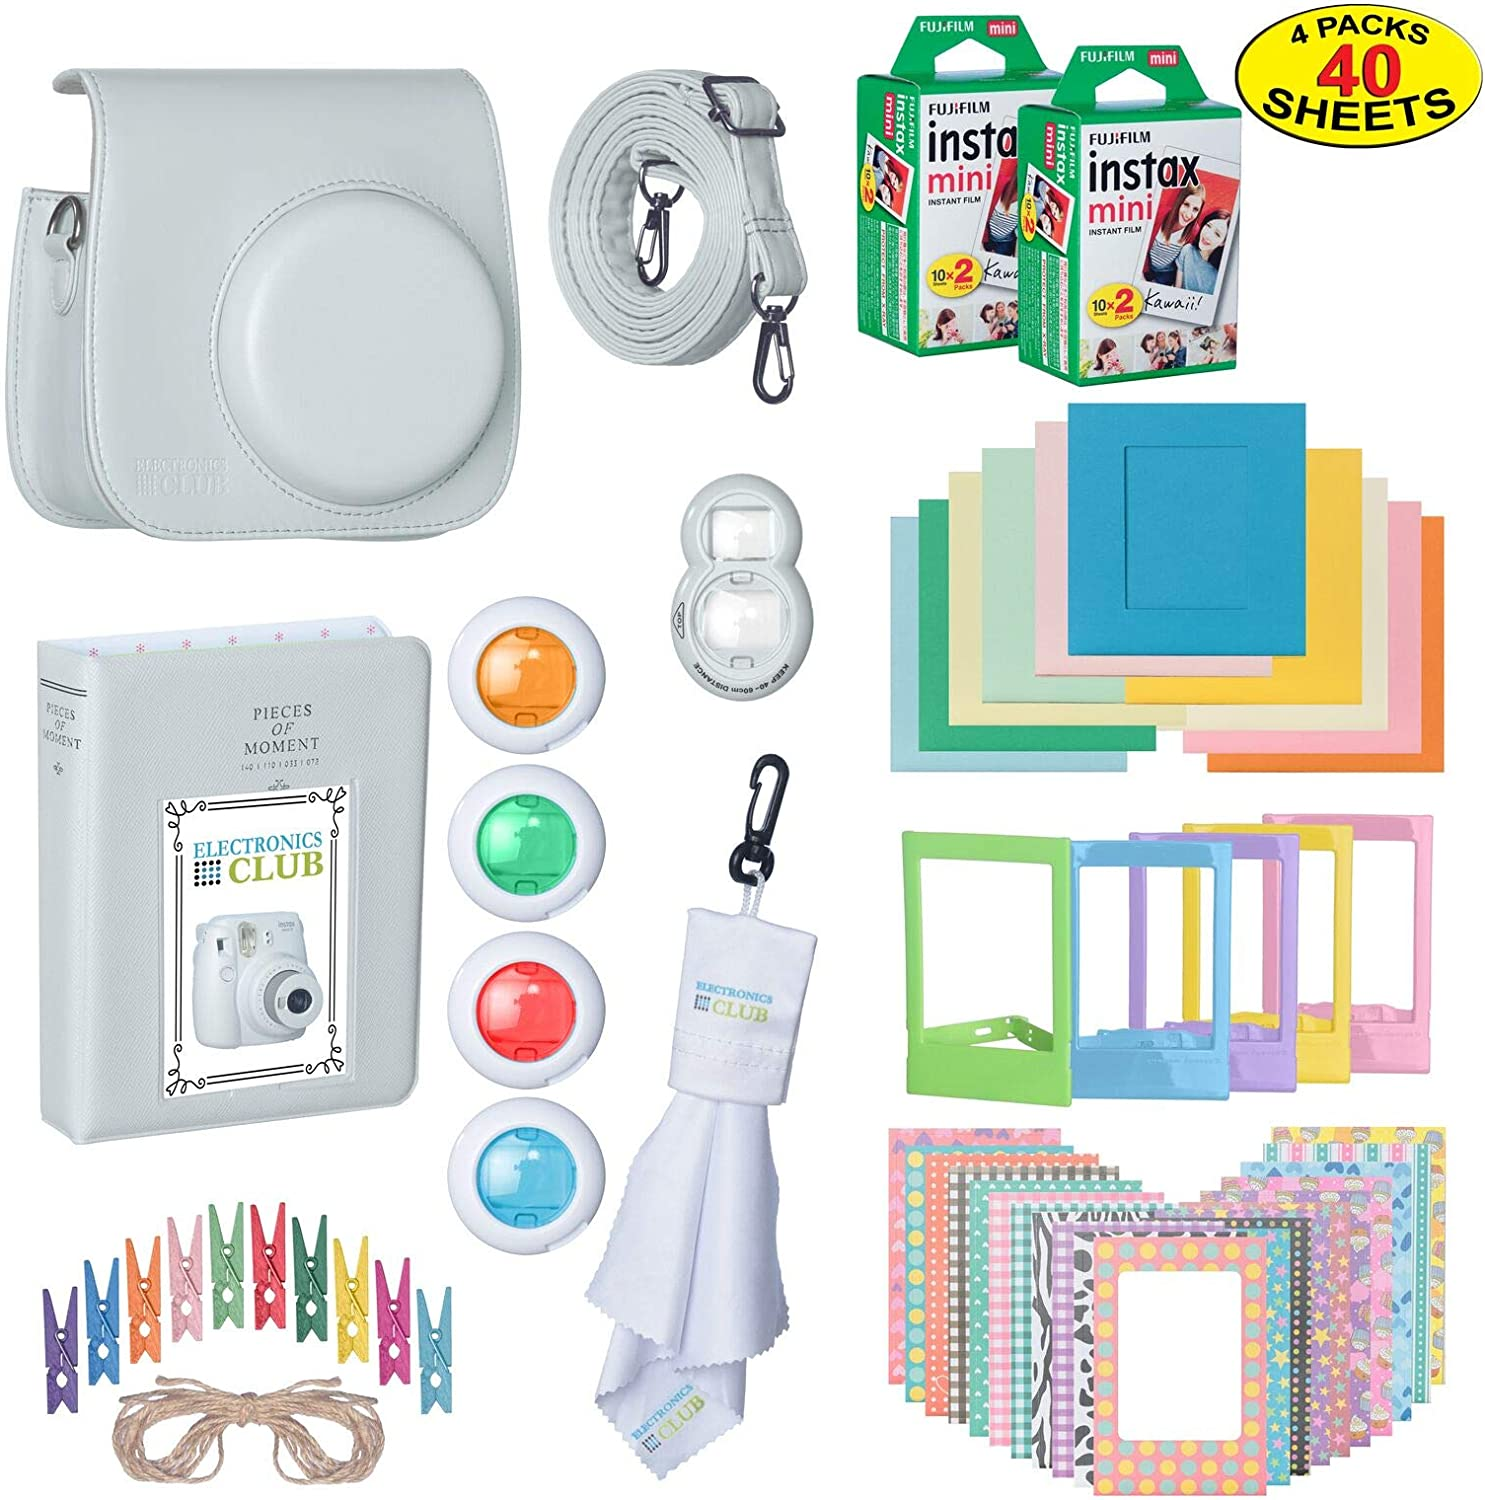 The Ultimate Accessories Kit Bundle for Fujifilm Instax Mini 9 Instant Film Camera